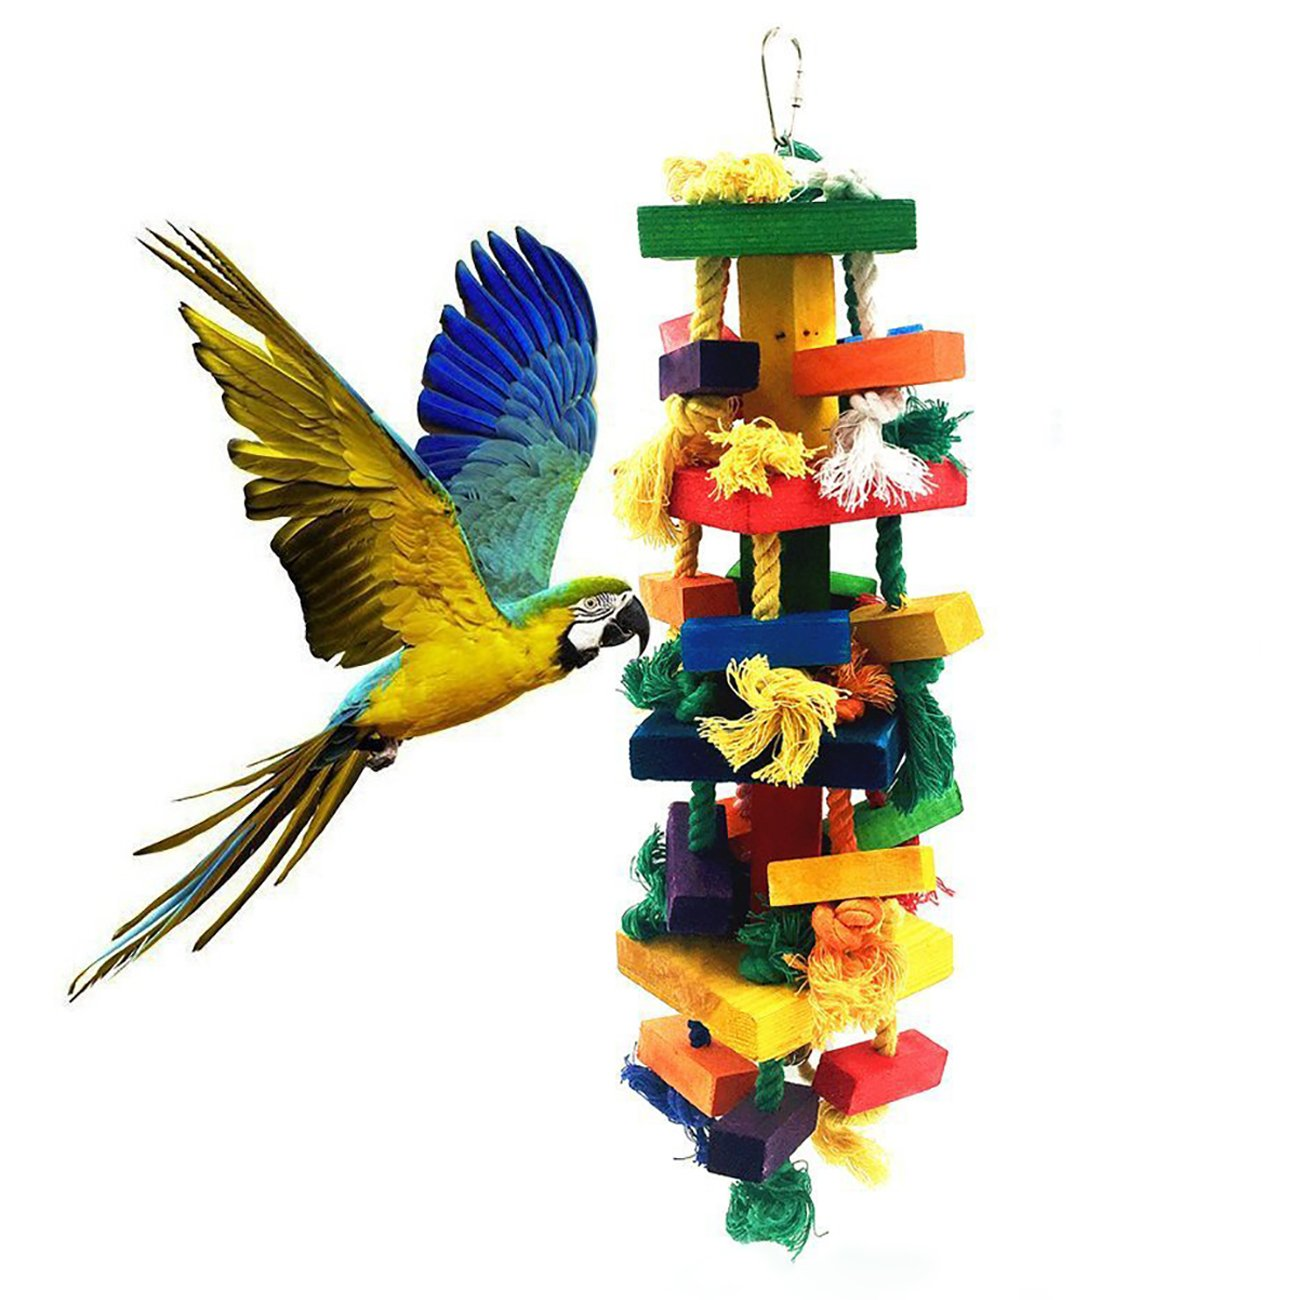 Uheng Bird Parrots Wooden Knots Blocks Chewing Toys, Cage Bite for African Grey Macaws Cockatoos Eclectus Conure Parakeets Cockatiel, Nibbling Preen for Beaks Trim, 17X 5Inch 17X 5Inch -Multi-Colored -2 Pack